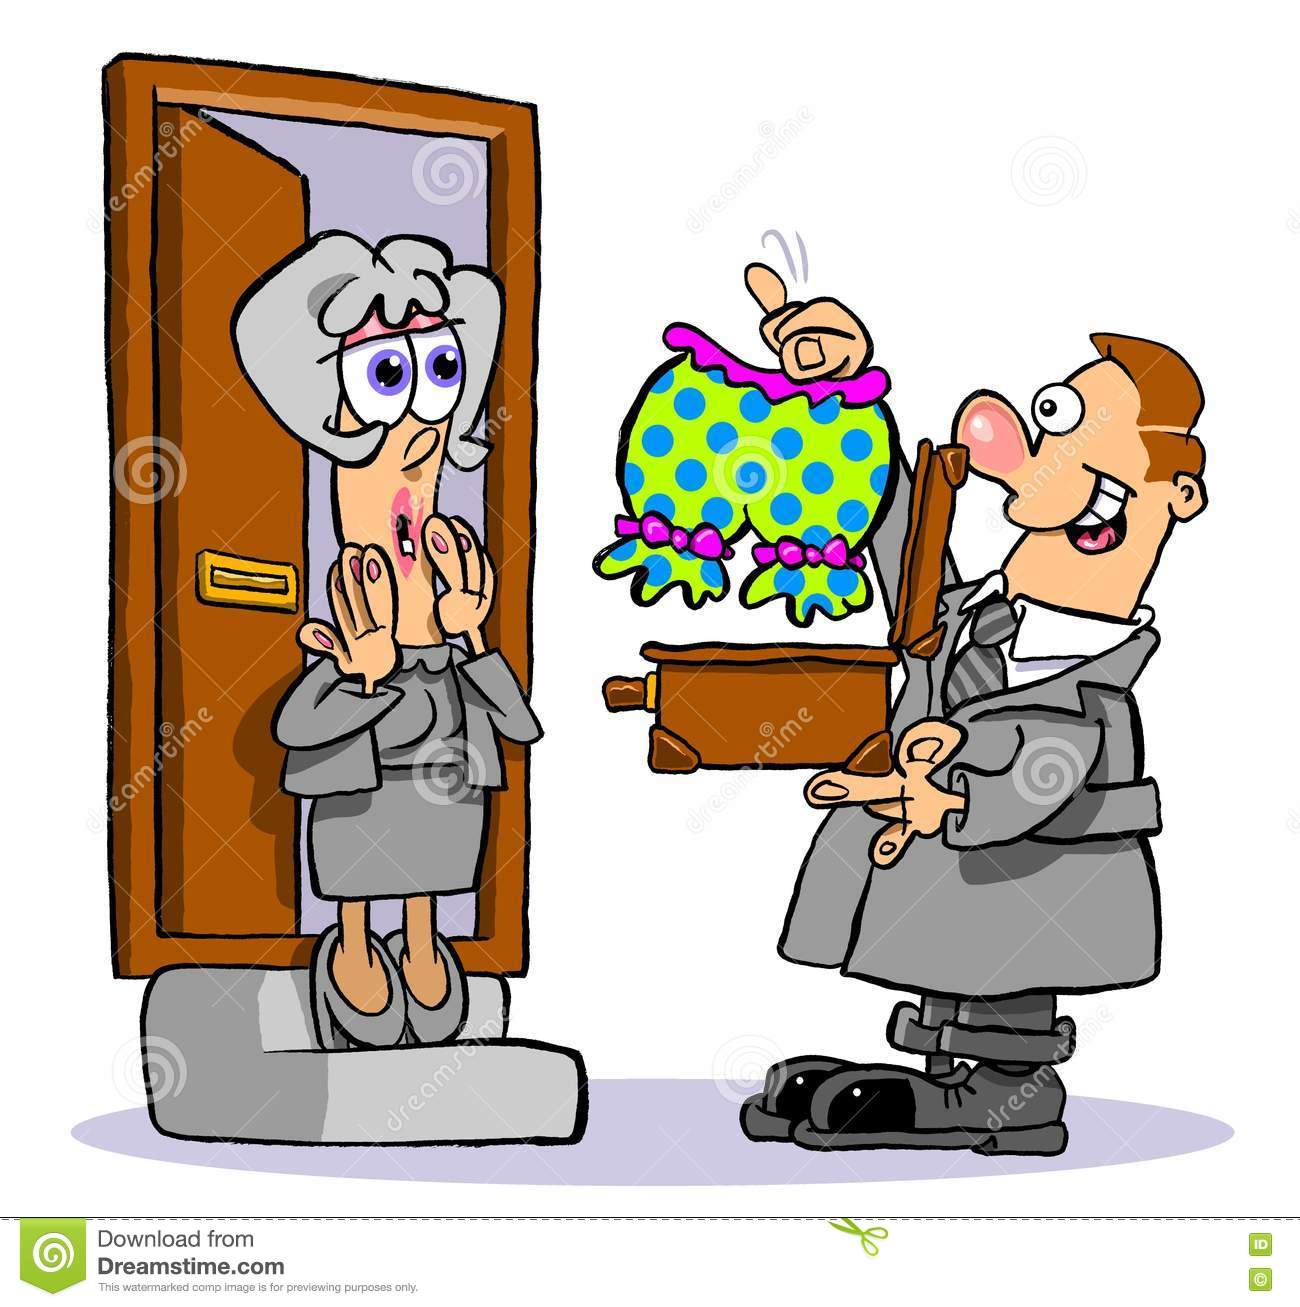 Door to door salesman clipart images for Door to door salesman